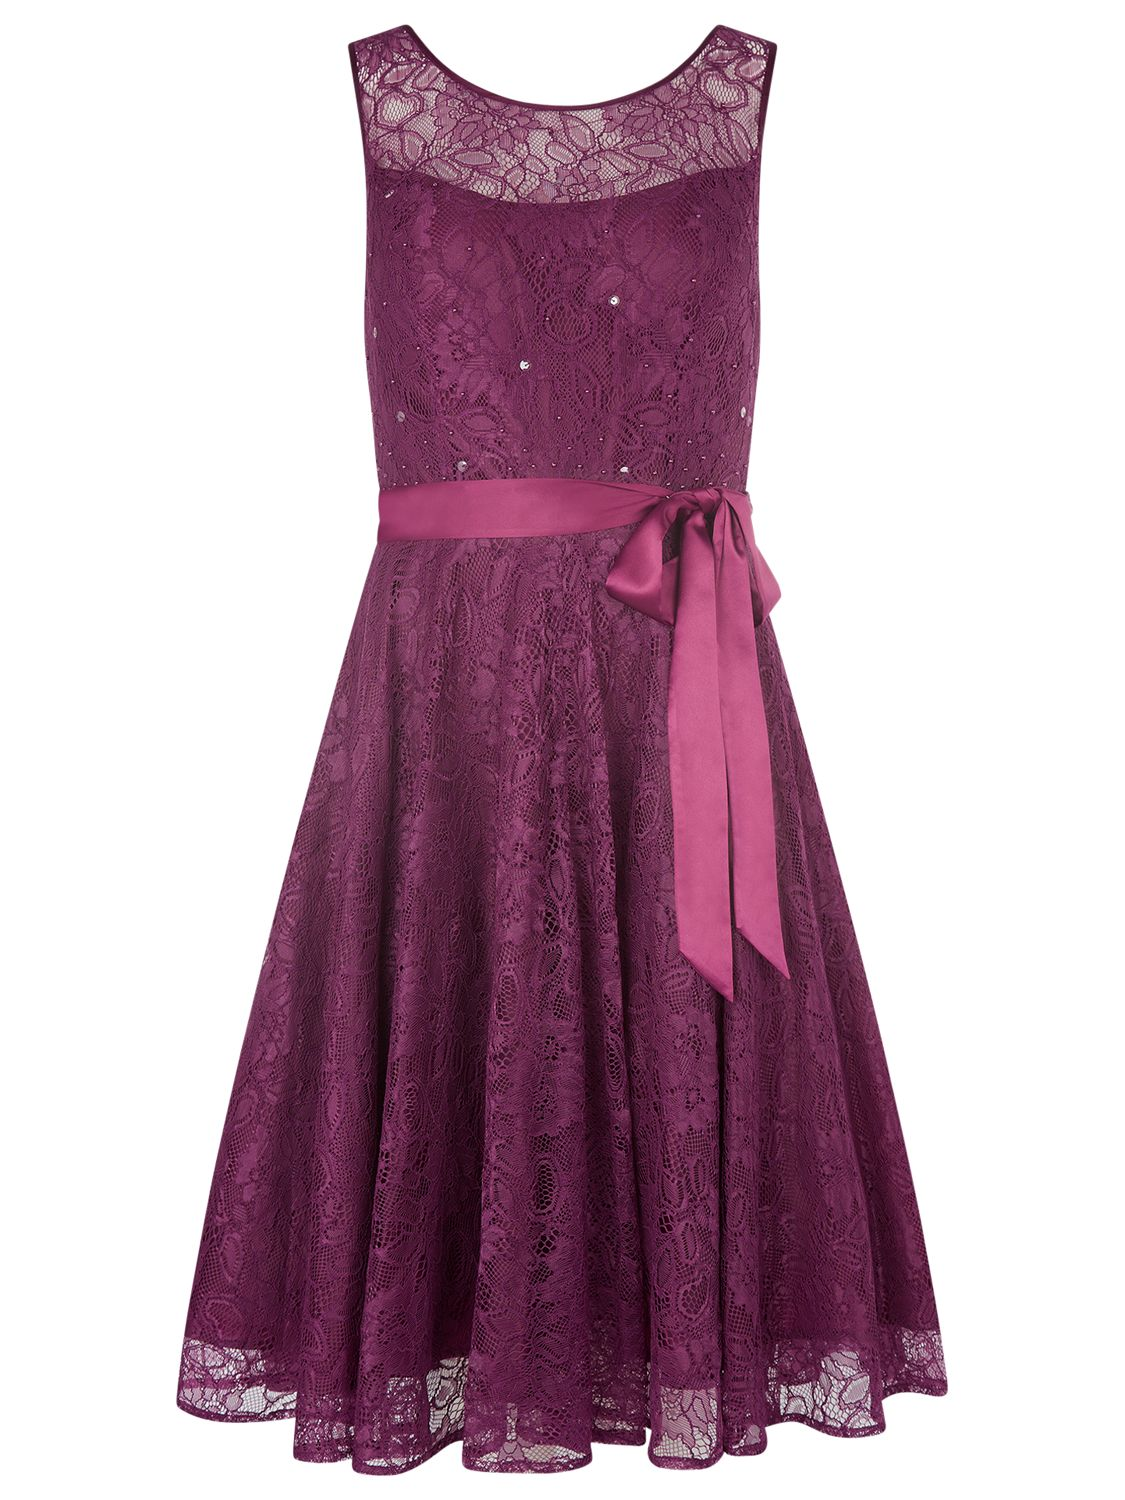 kaliko bead and lace prom dress berry, kaliko, bead, lace, prom, dress, berry, 12|14, clearance, womenswear offers, womens dresses offers, new years party offers, special offers, 20% off selected kaliko, women, plus size, party outfits, lace dress, inactive womenswear, new reductions, womens dresses, party dresses, 1741926